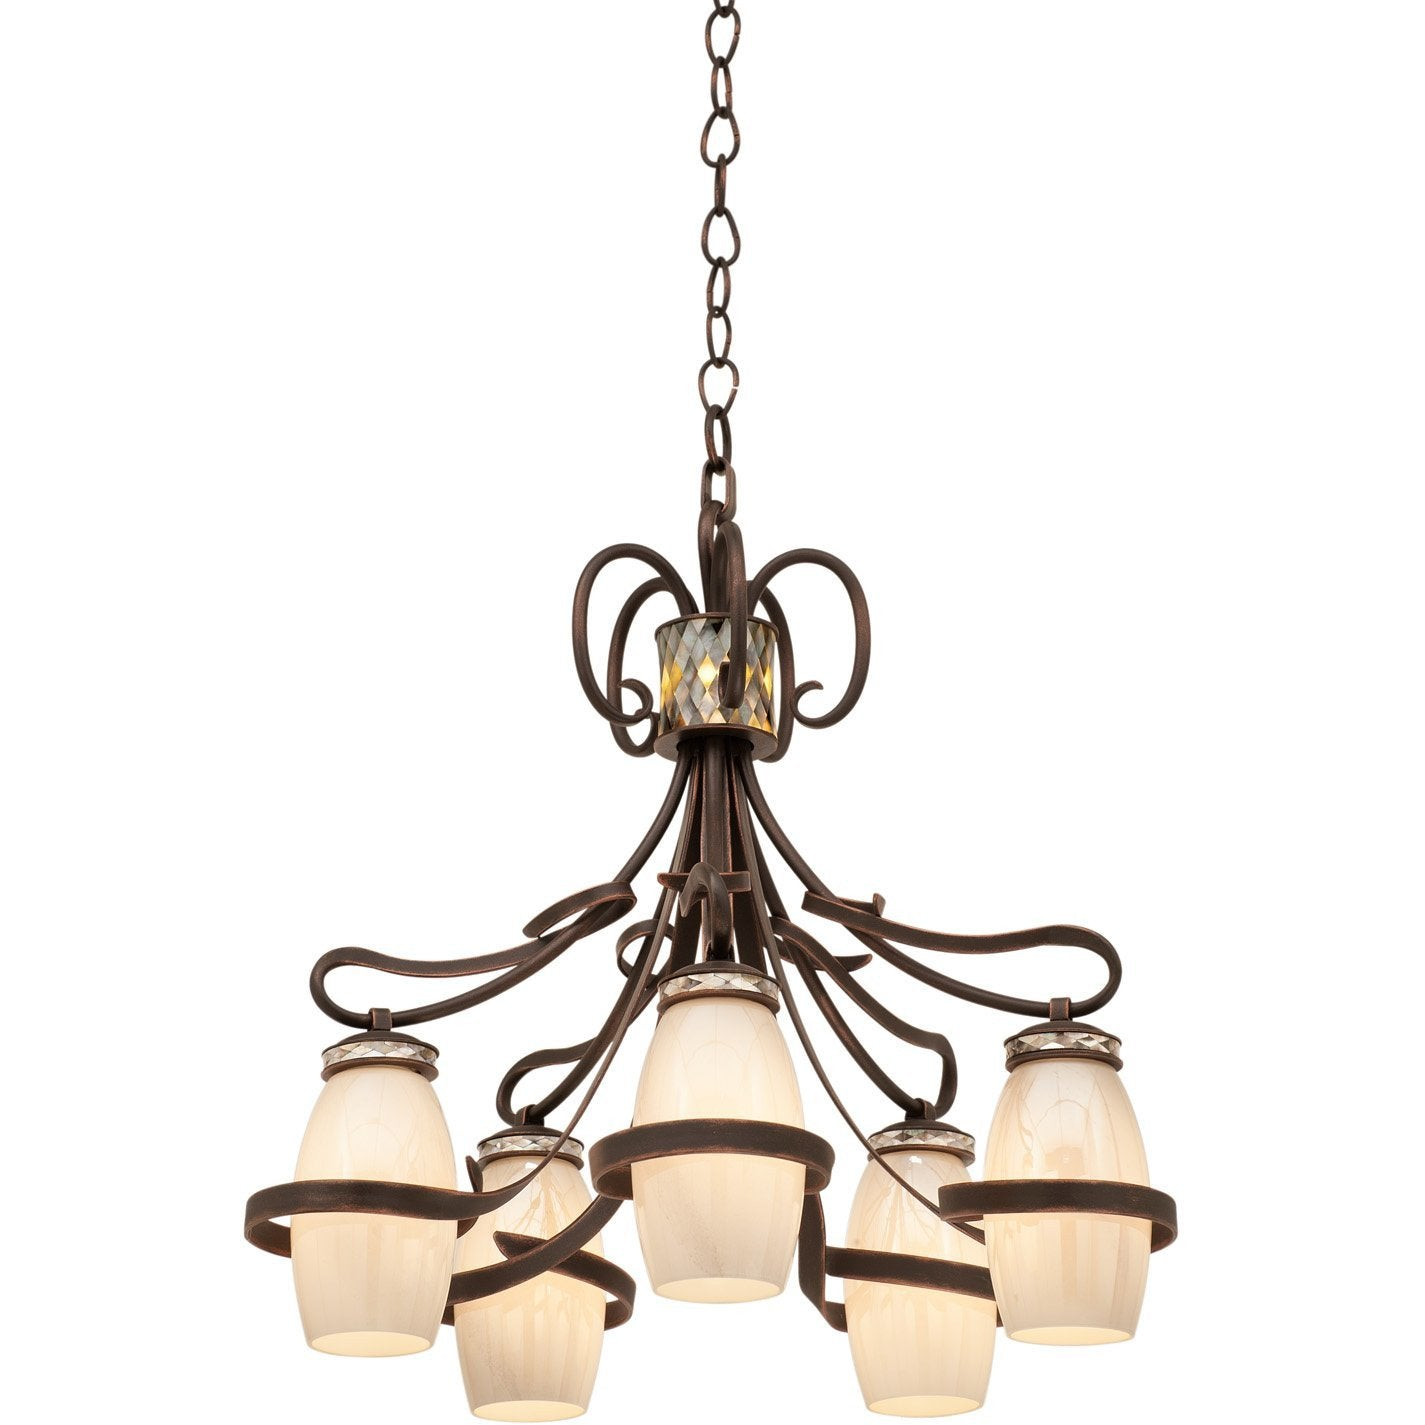 Kalco Lighting Chandeliers Monaco 5 Light Chandelier By Kalco Lighting 6022